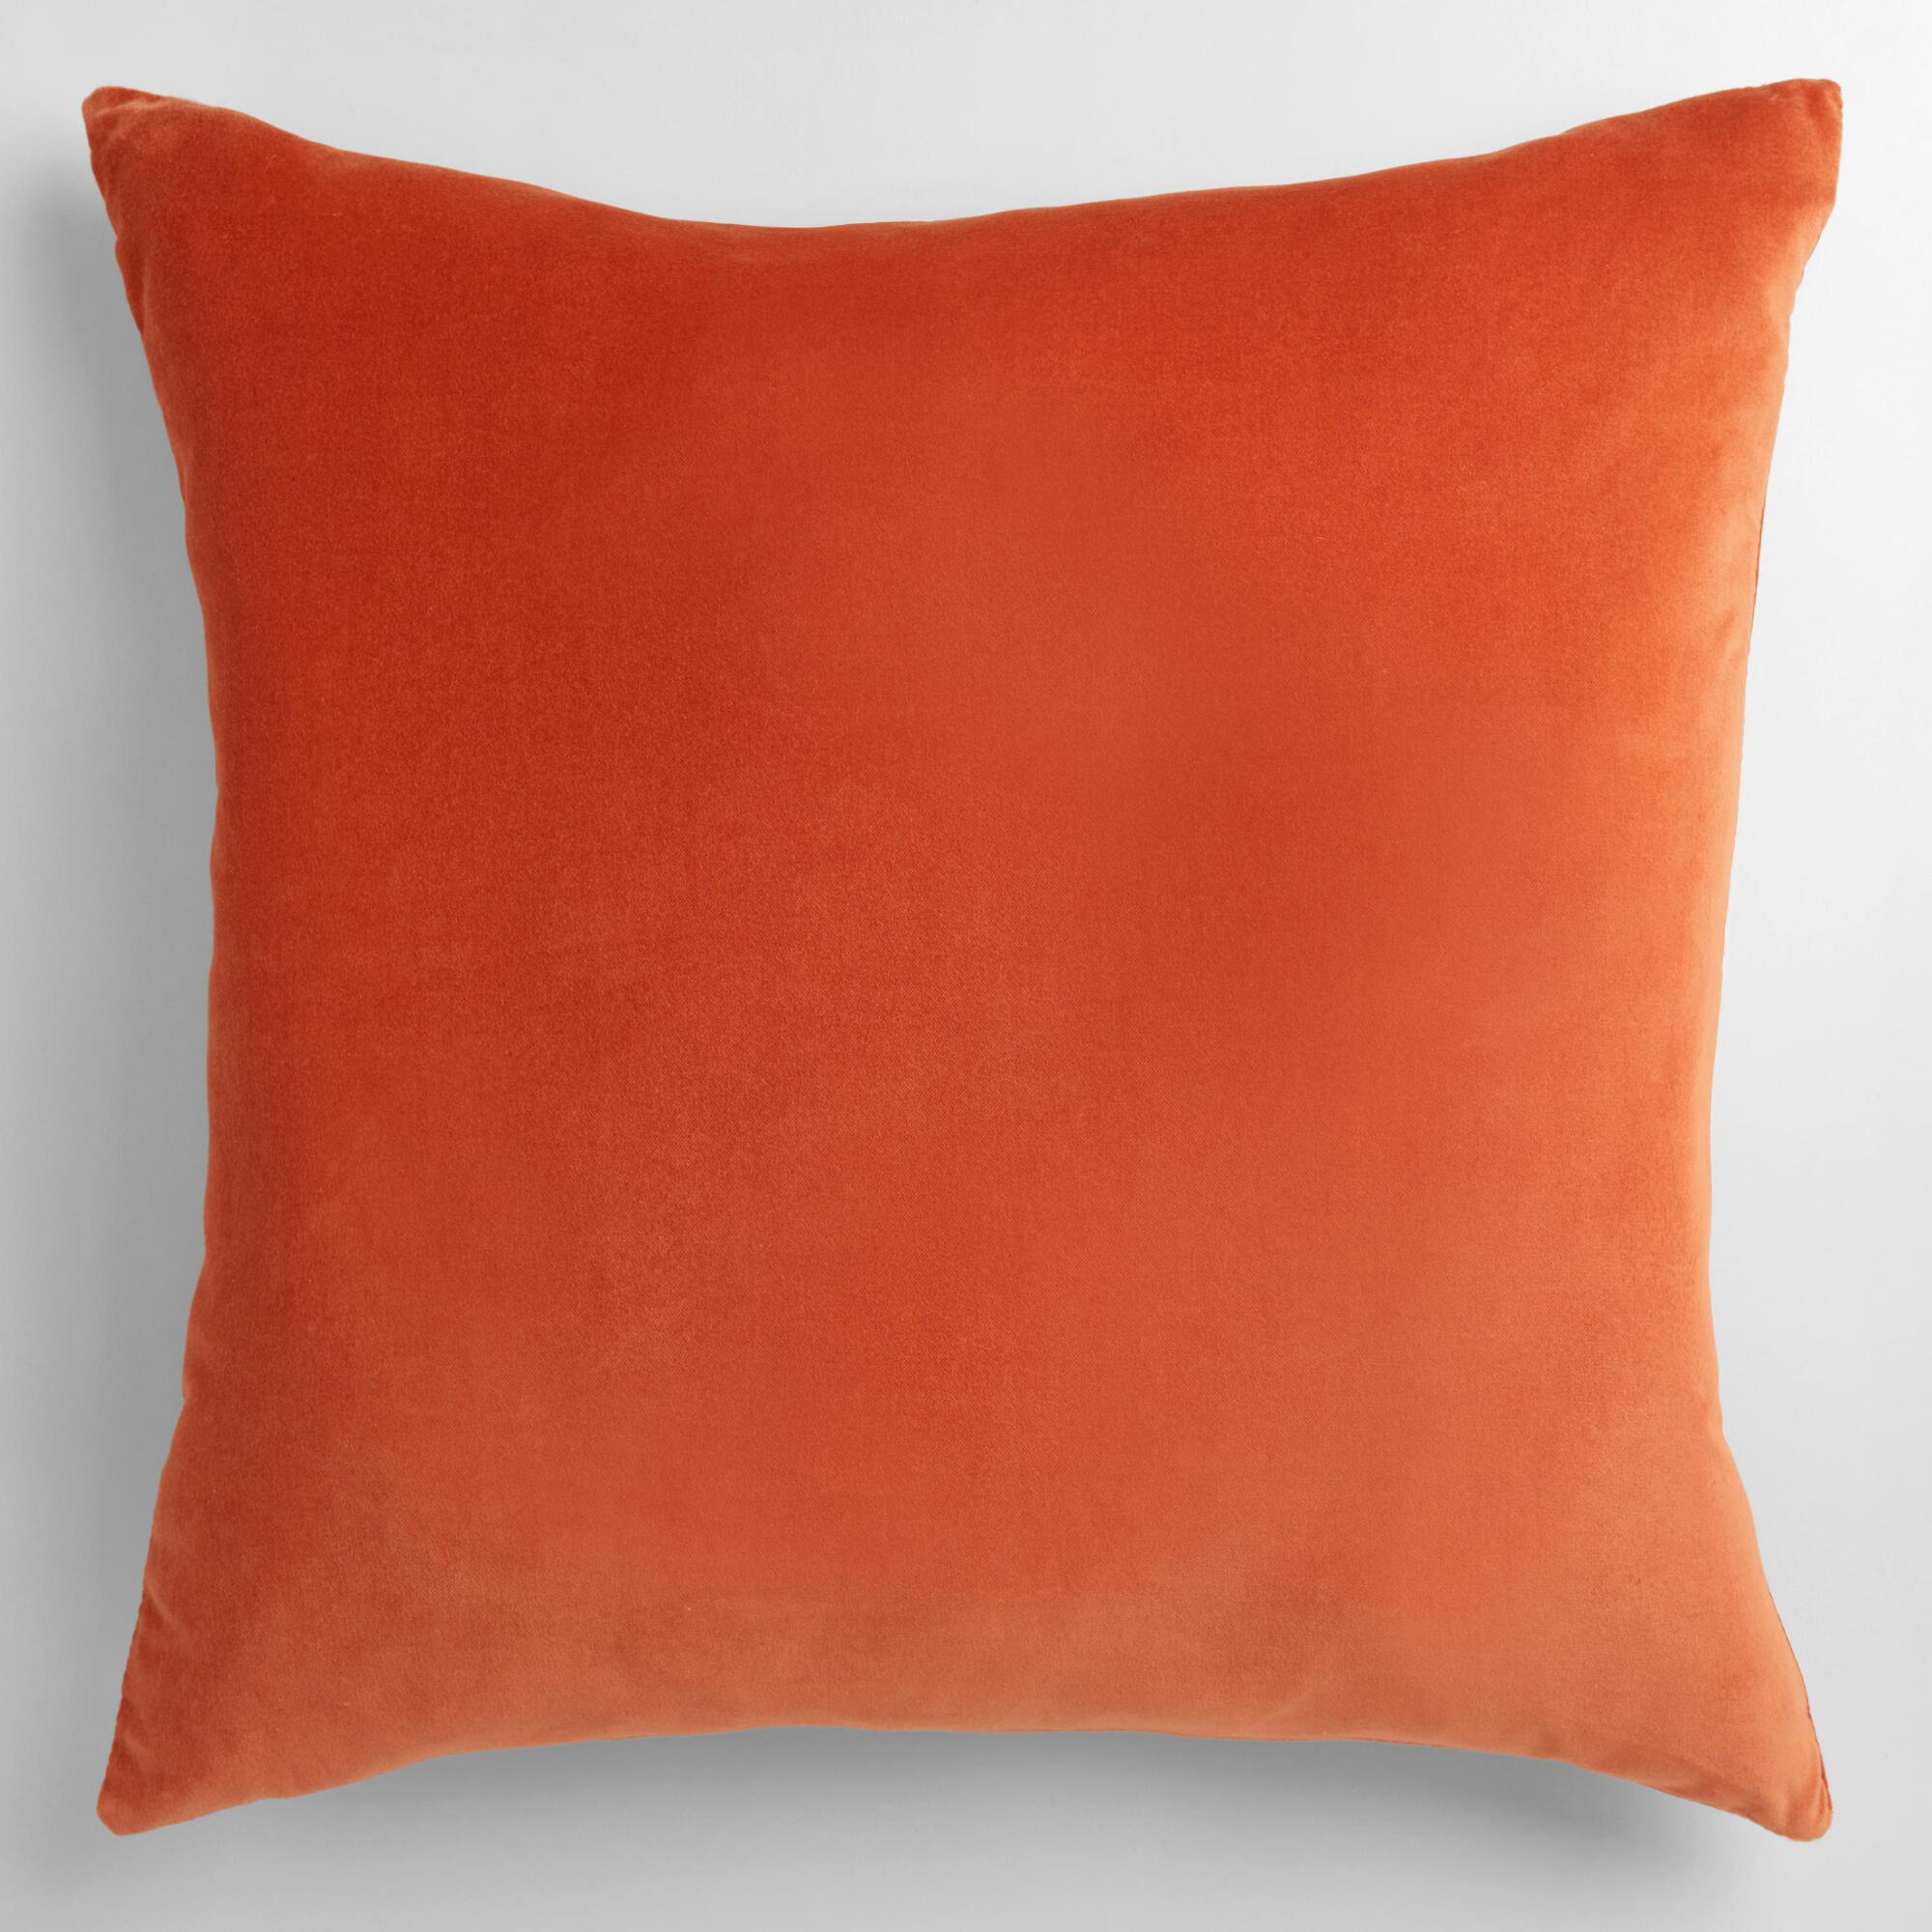 Orange Decorative Pillows Couch : Orange Velvet Throw Pillow World Market